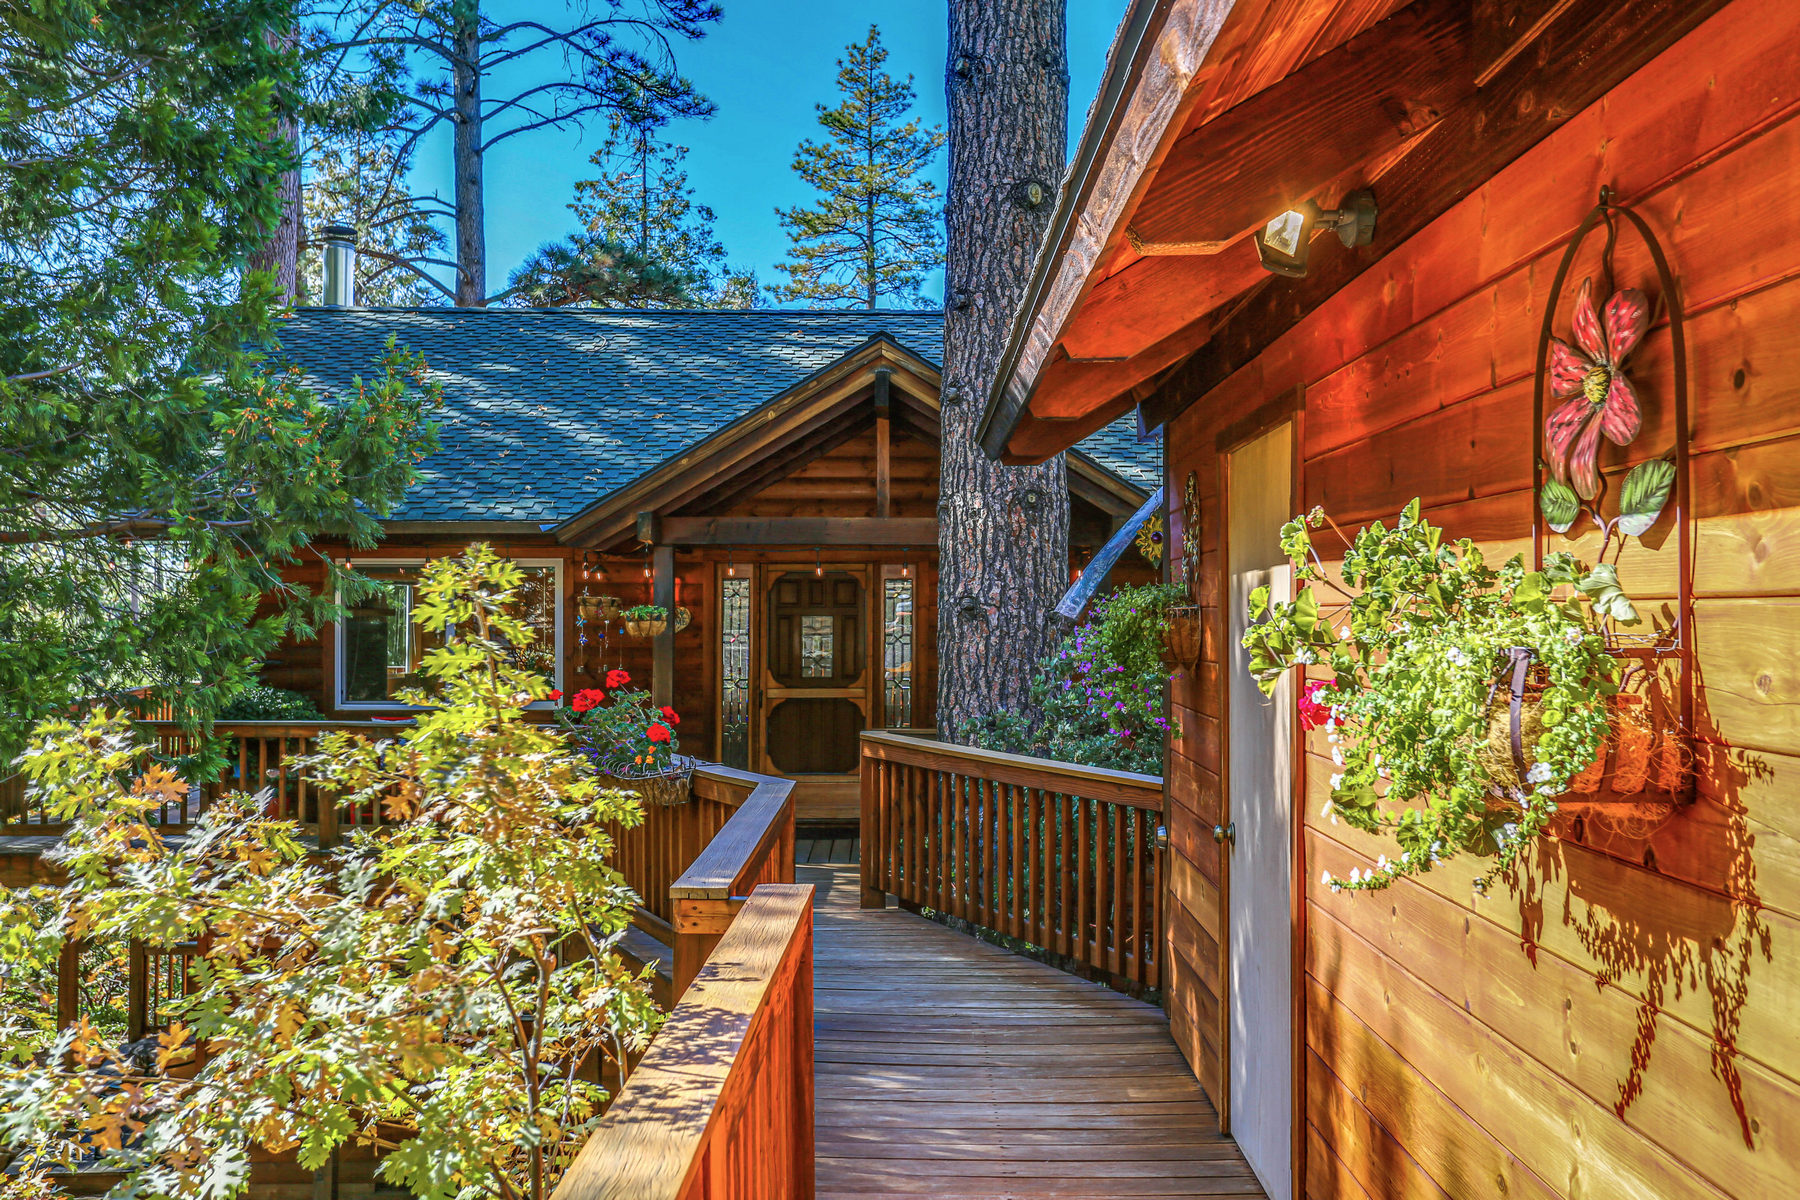 Single Family Homes for Sale at 25985 Cassler Drive Idyllwild, California 92549 United States